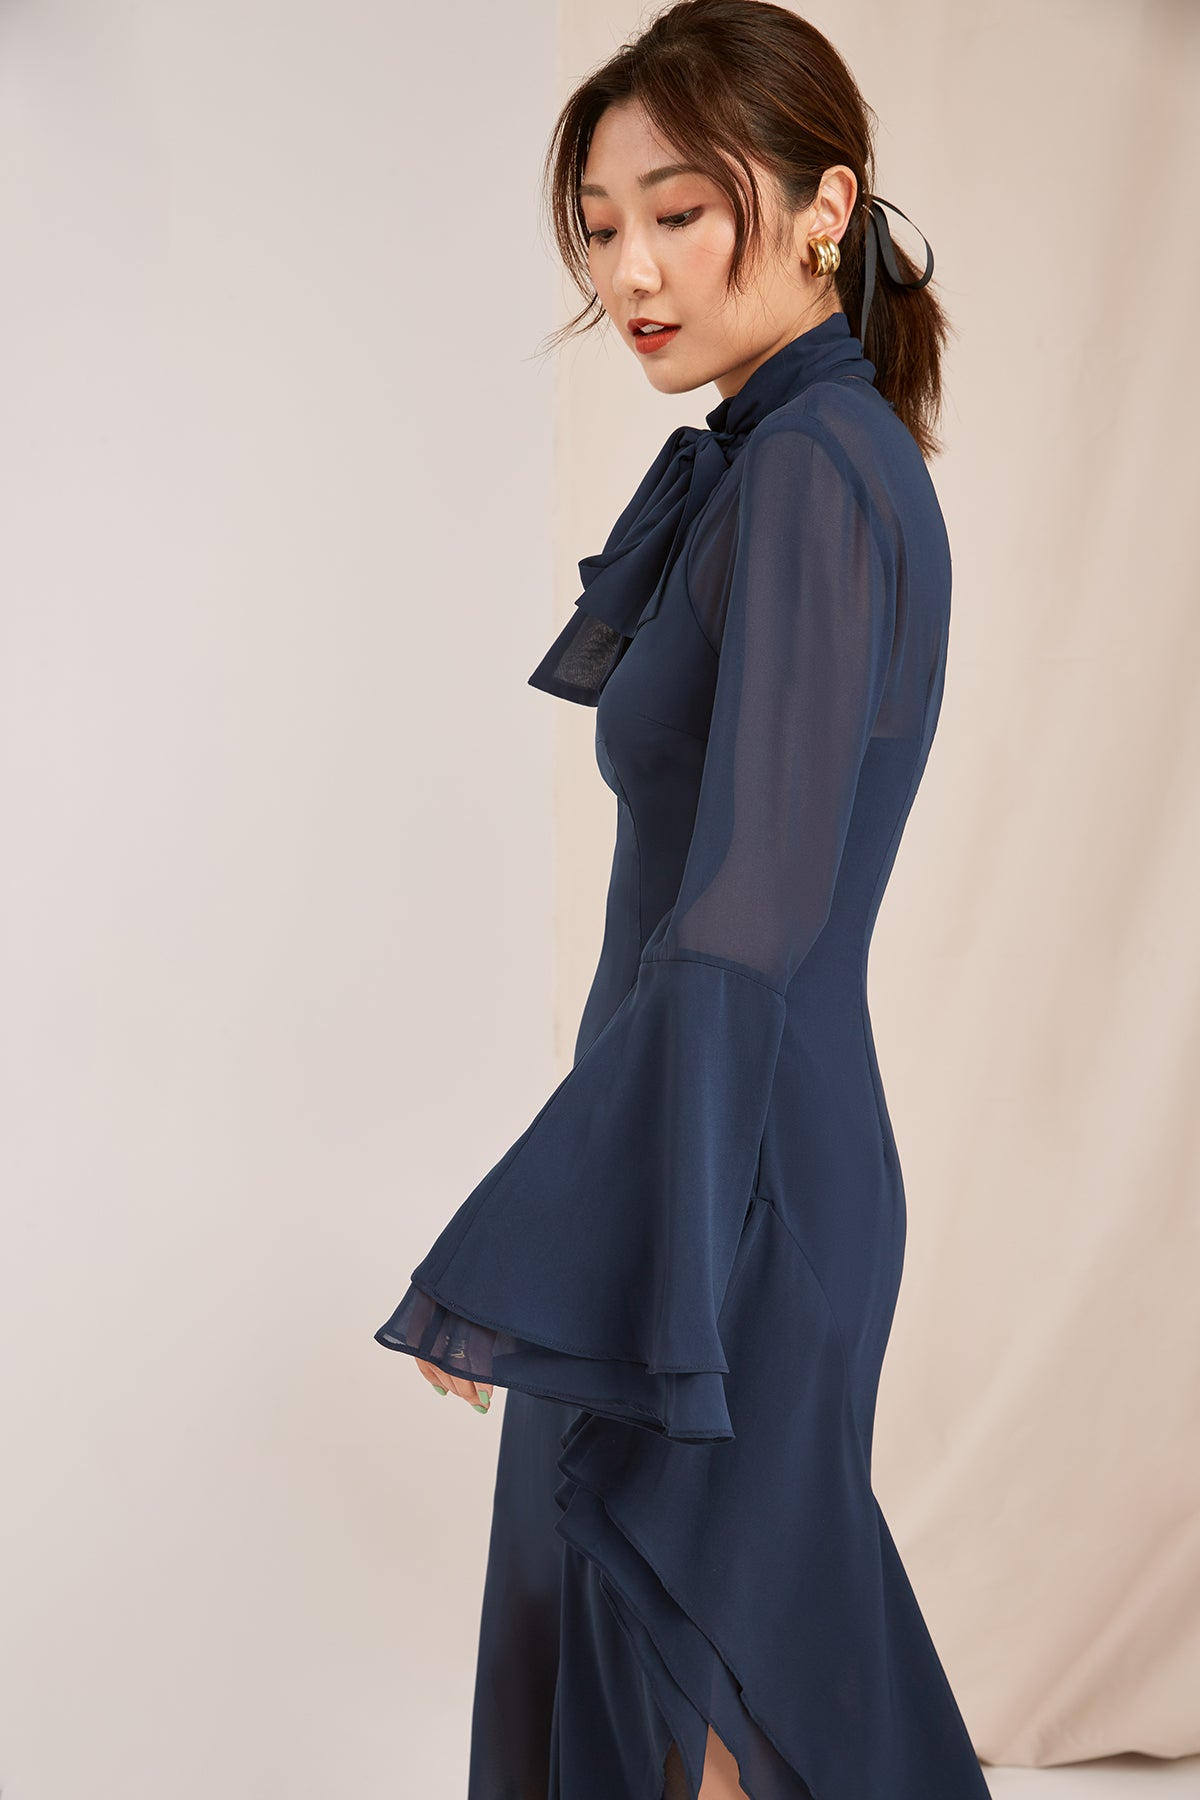 NIGHTFALL DRESS navy